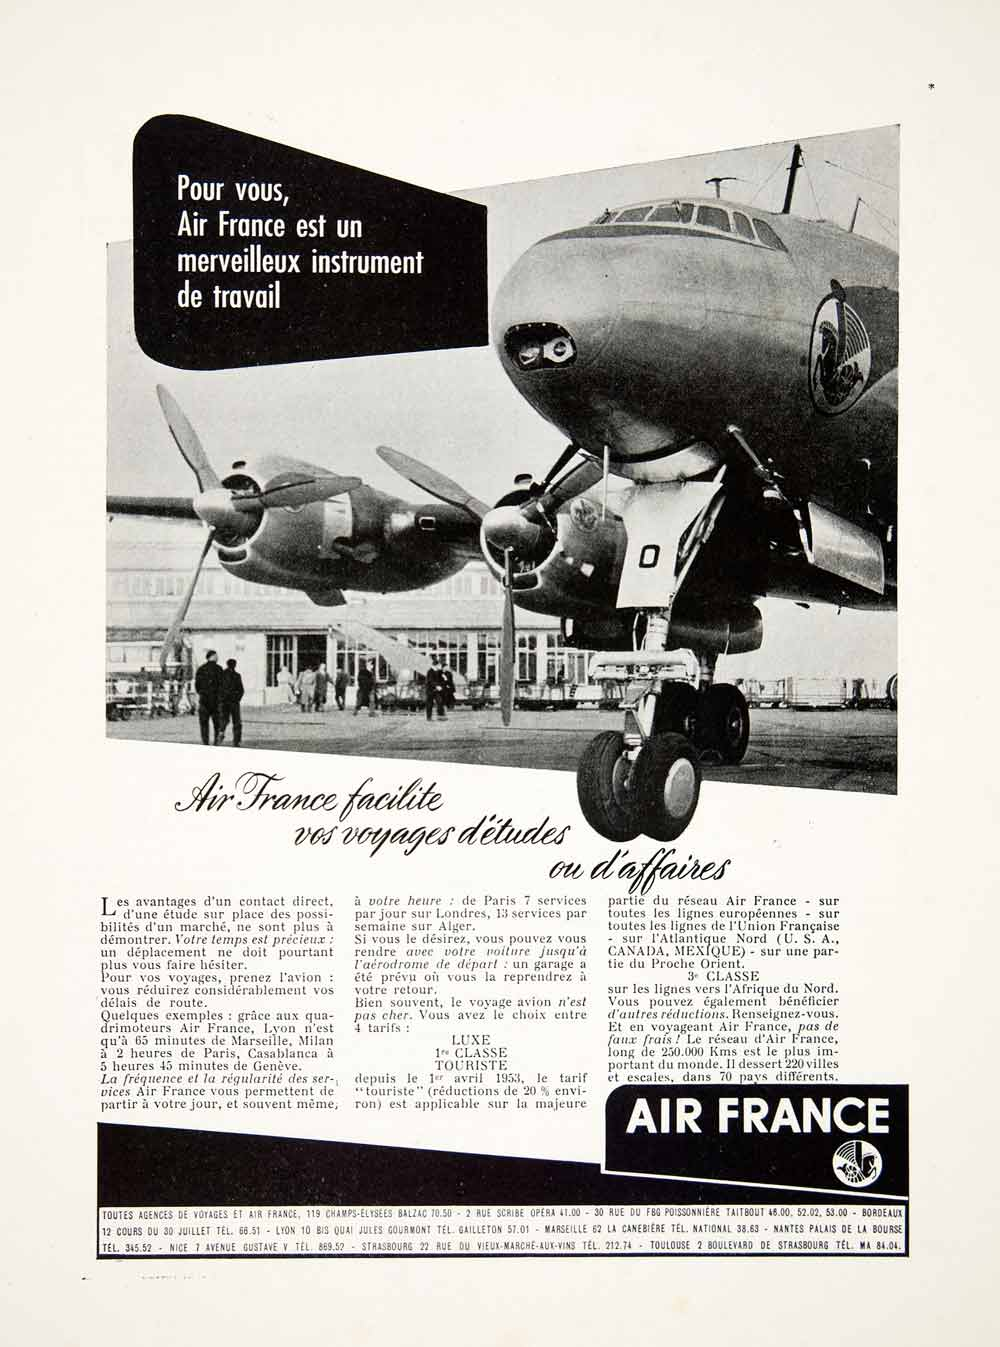 1953 Ad Air France Airline Aeroplane Airplane Airway Engine Travel Flight VEN8